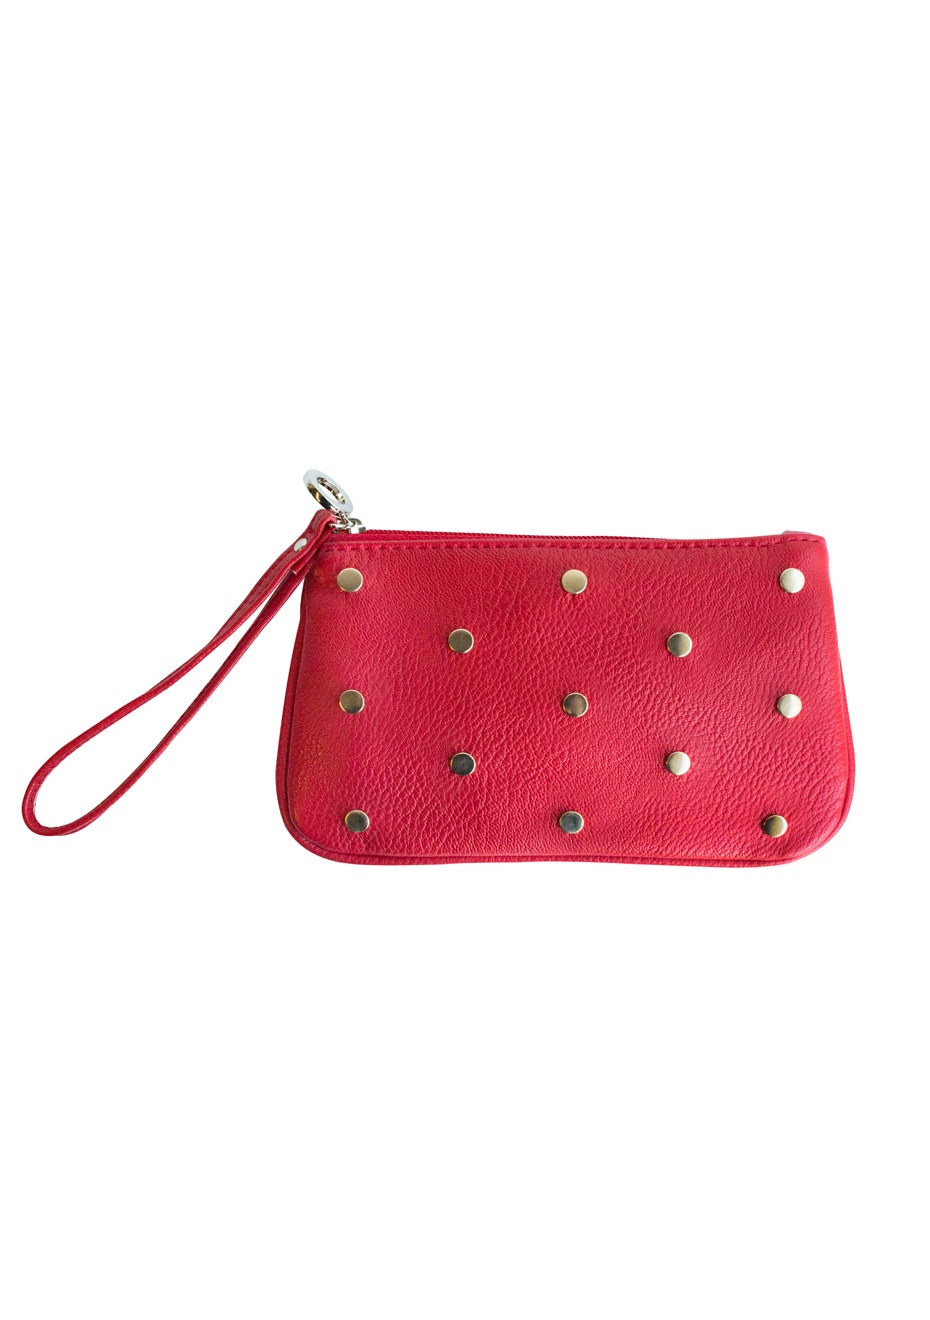 TL+C - Studded Red Carry Case - Red